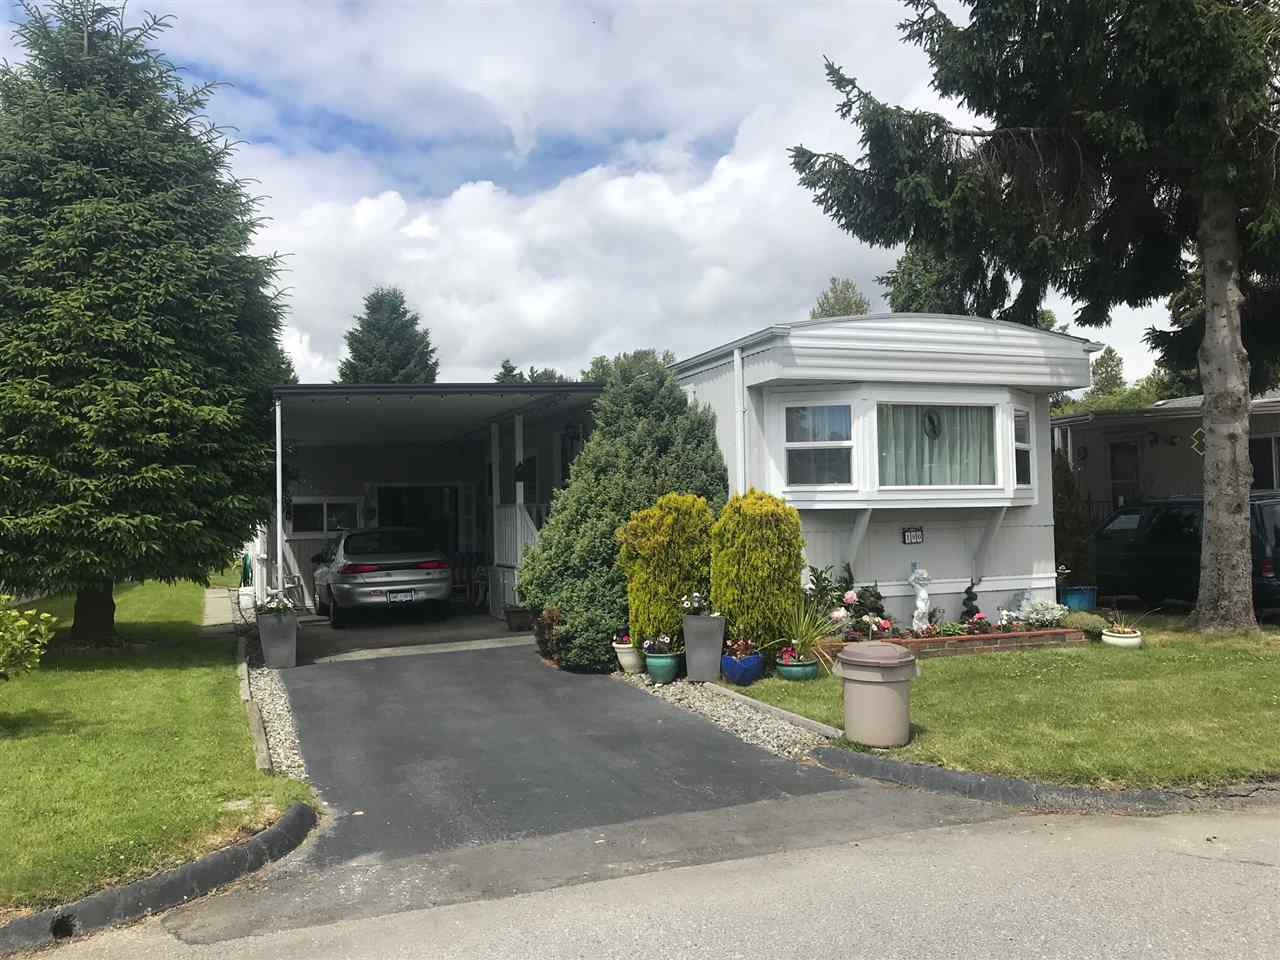 Main Photo: 180 1840 160 Street in Surrey: King George Corridor Manufactured Home for sale (South Surrey White Rock)  : MLS®# R2280294